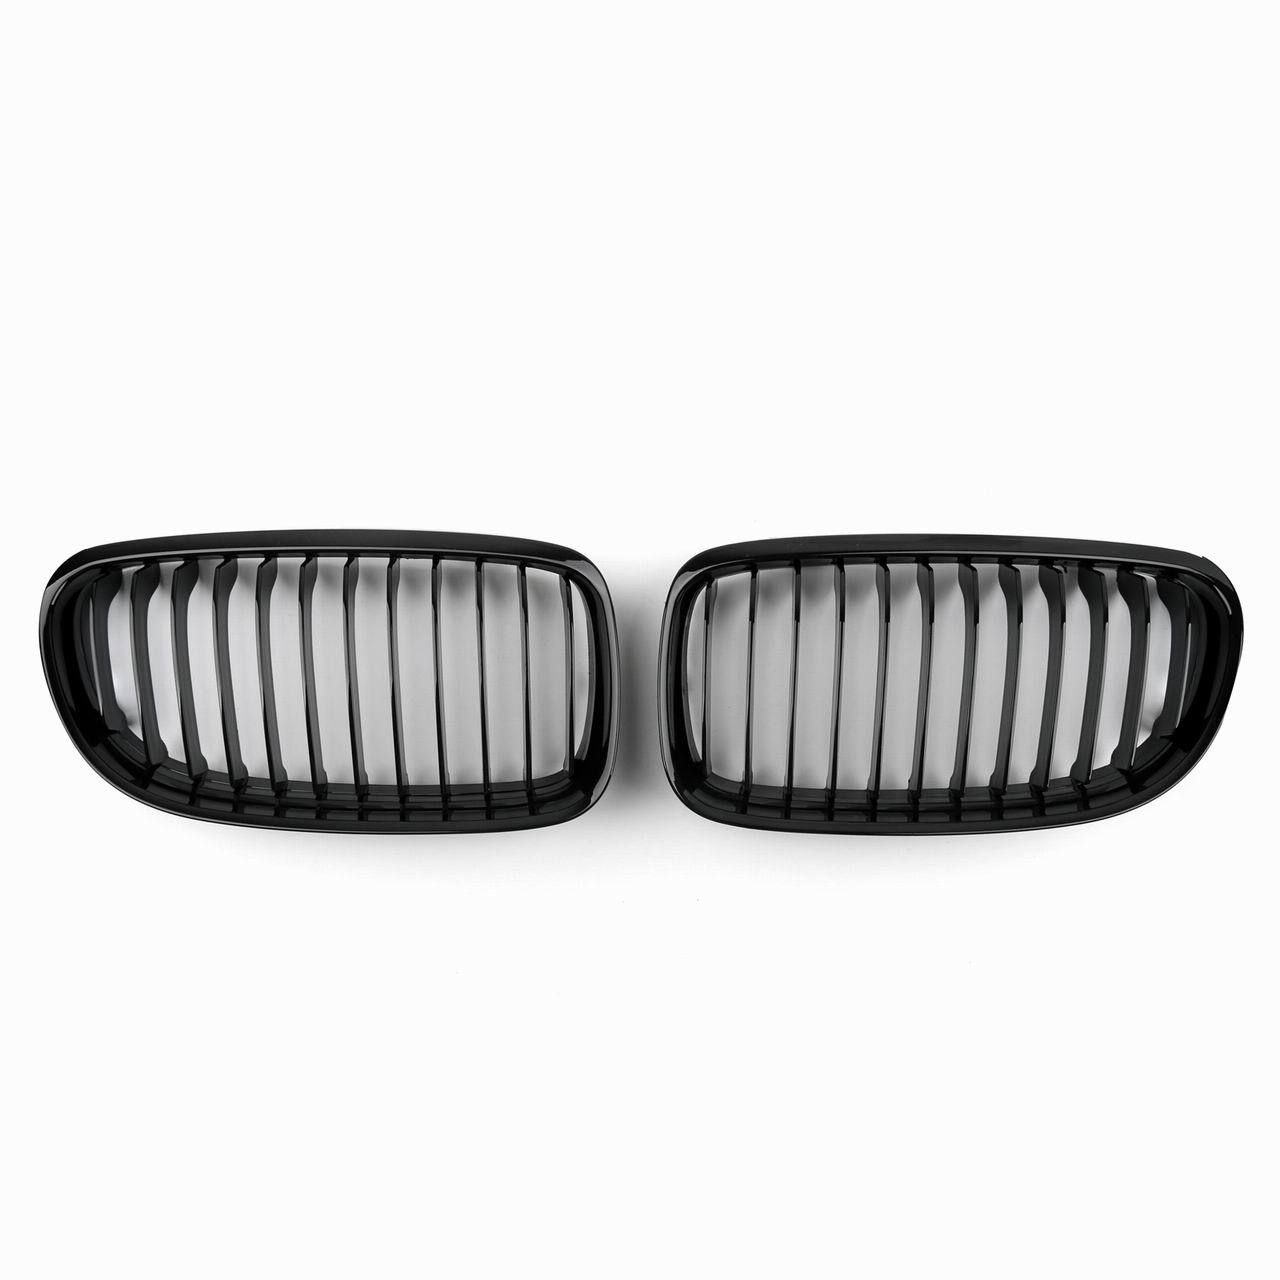 Mad Hornets - Front Replacement Kidney Grille BMW E90 E91 LCI (2009-2012) Gloss Black , $61.99 (http://www.madhornets.com/front-replacement-kidney-grille-bmw-e90-e91-lci-2009-2012-gloss-black/)